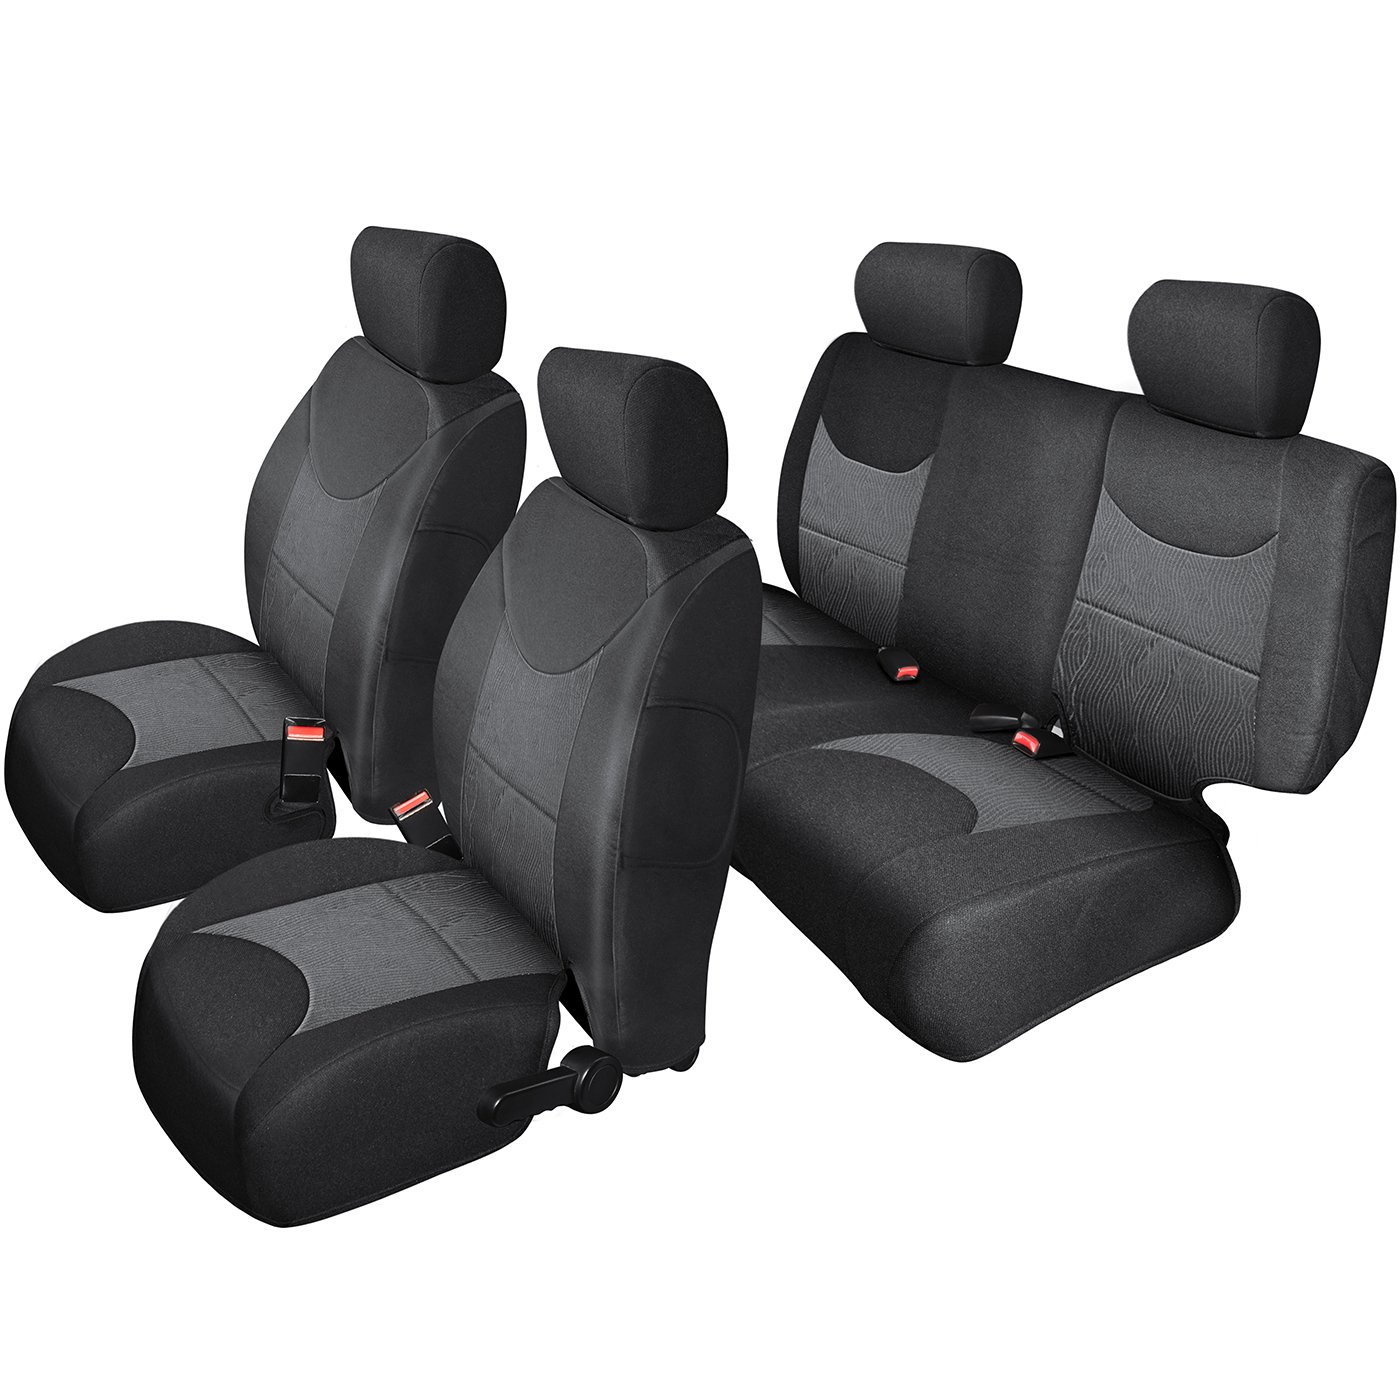 OxGord Custom Fit Seat Cover for 2013-2018 Jeep Wrangler Unlimited JK 4WD/2WD - Front and Rear Set, Gray & Black